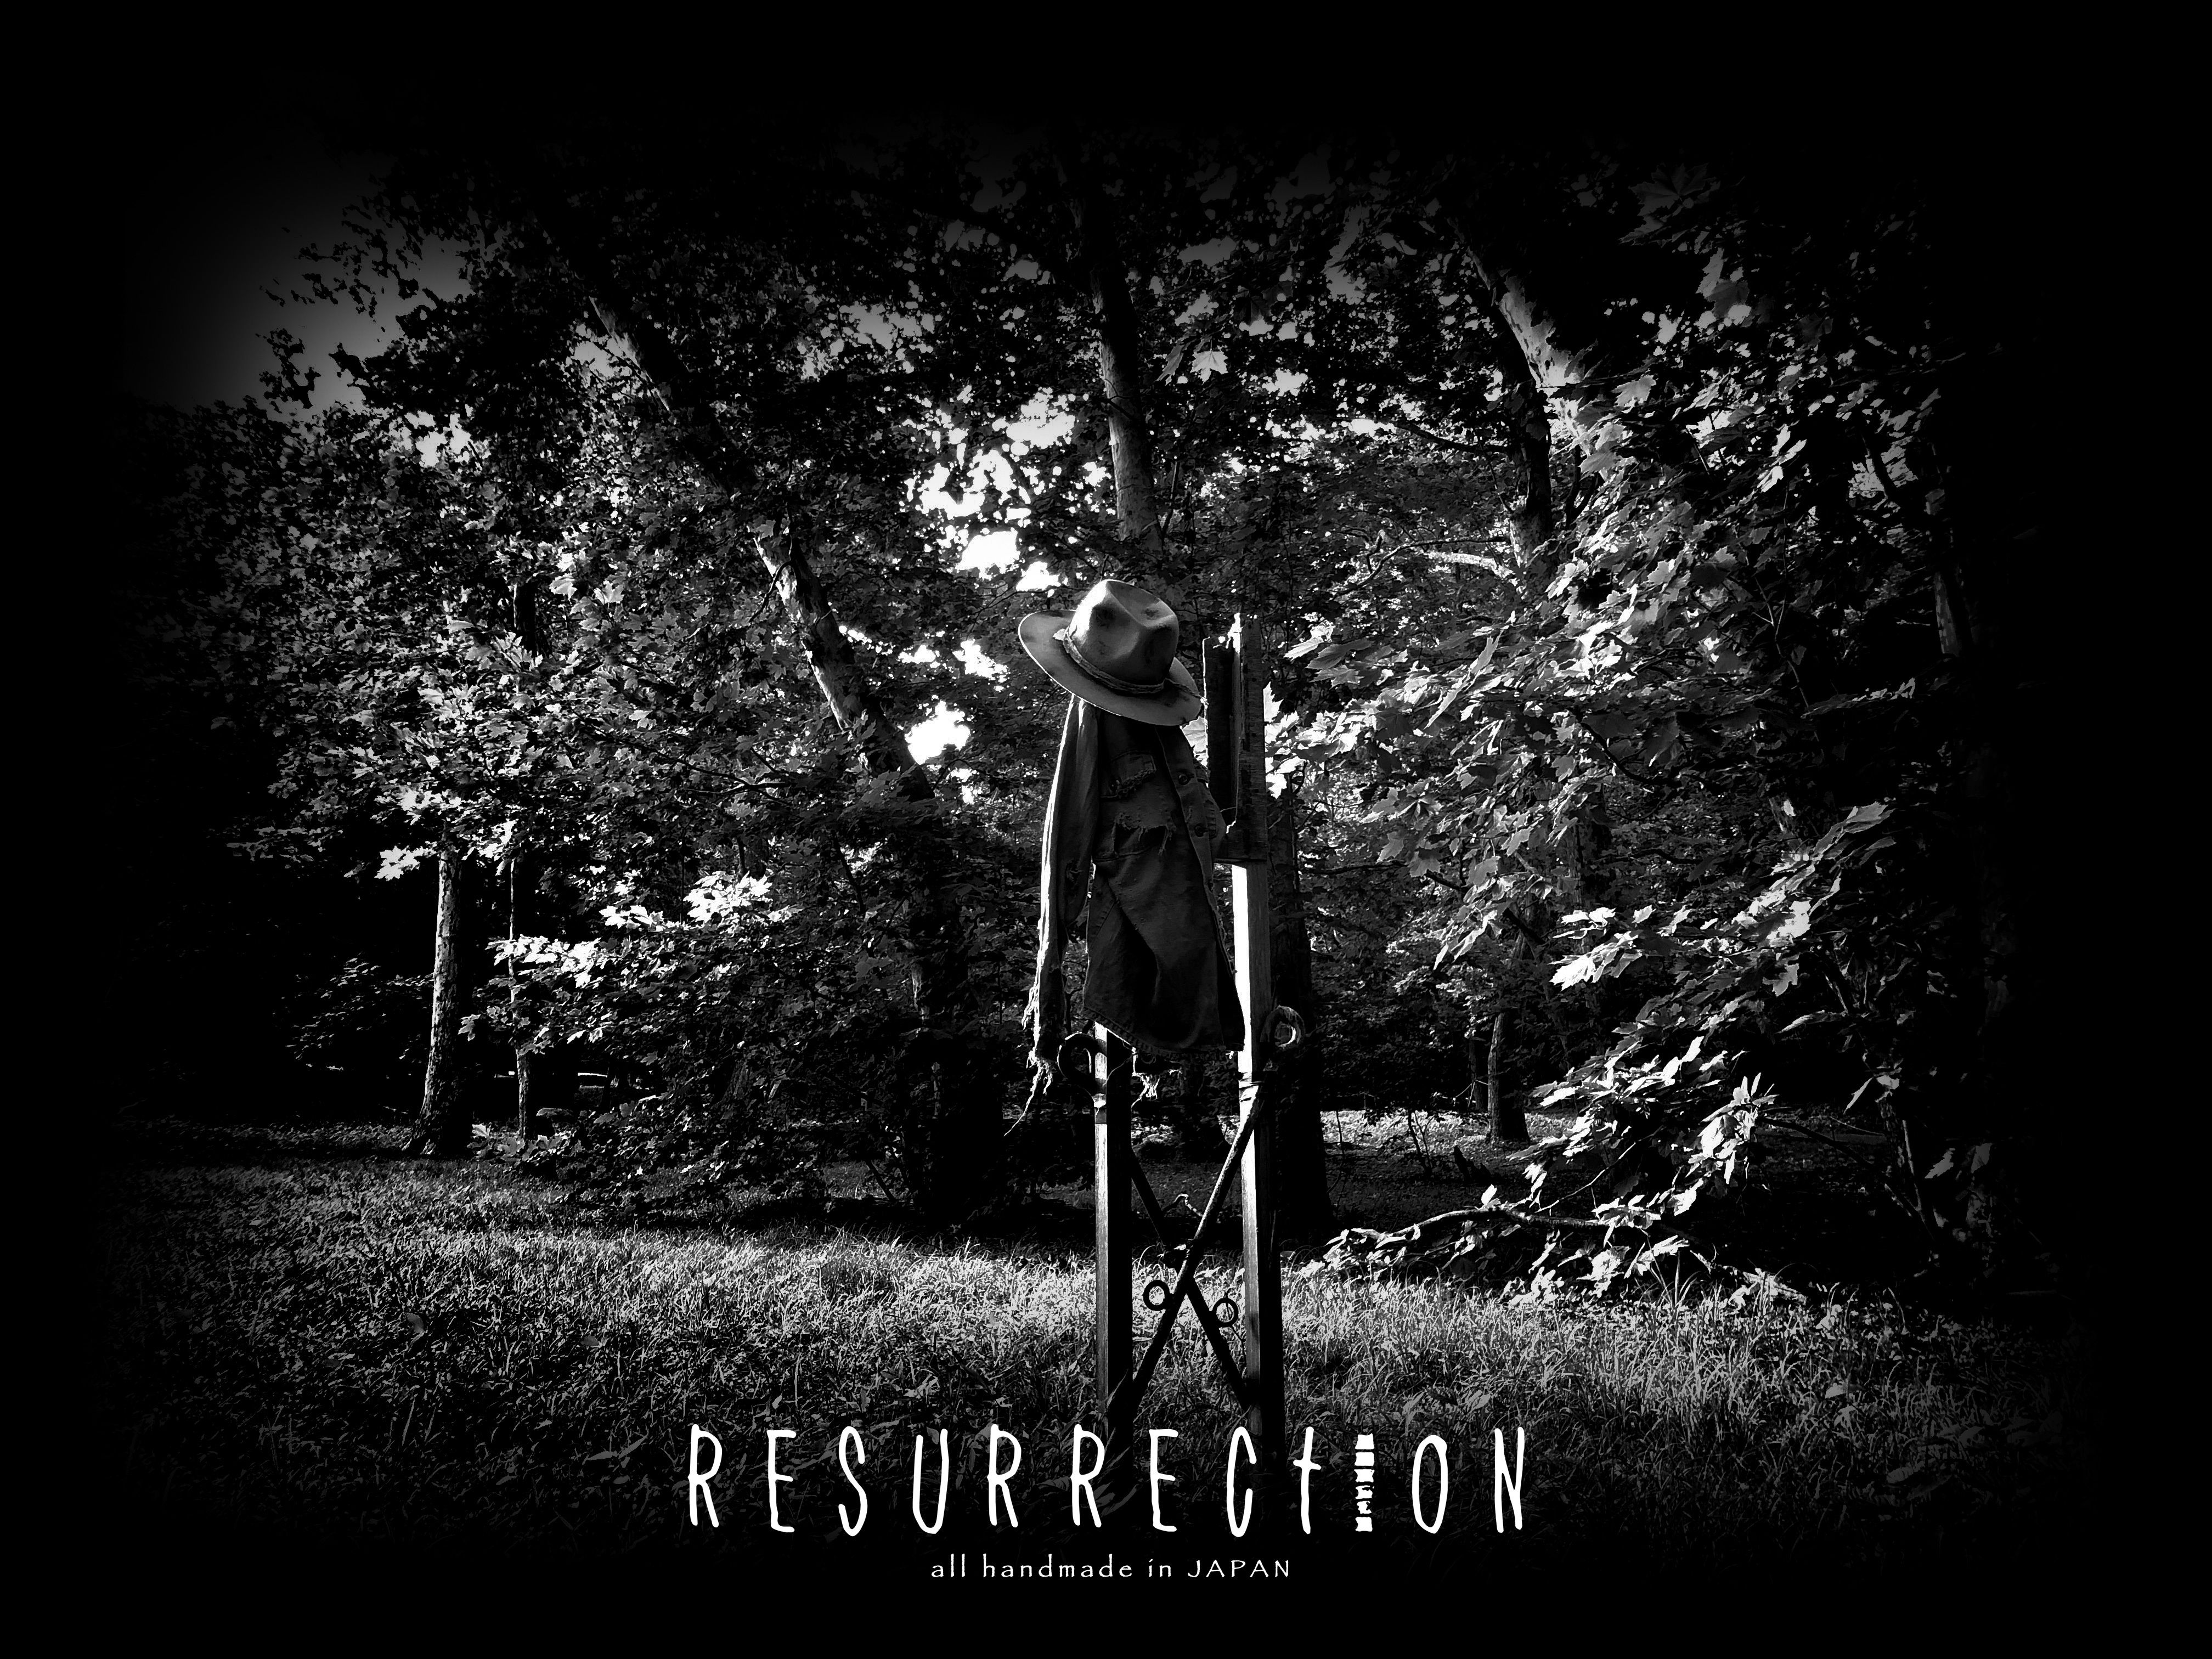 RESURRECTION -all handmade in JAPAN-